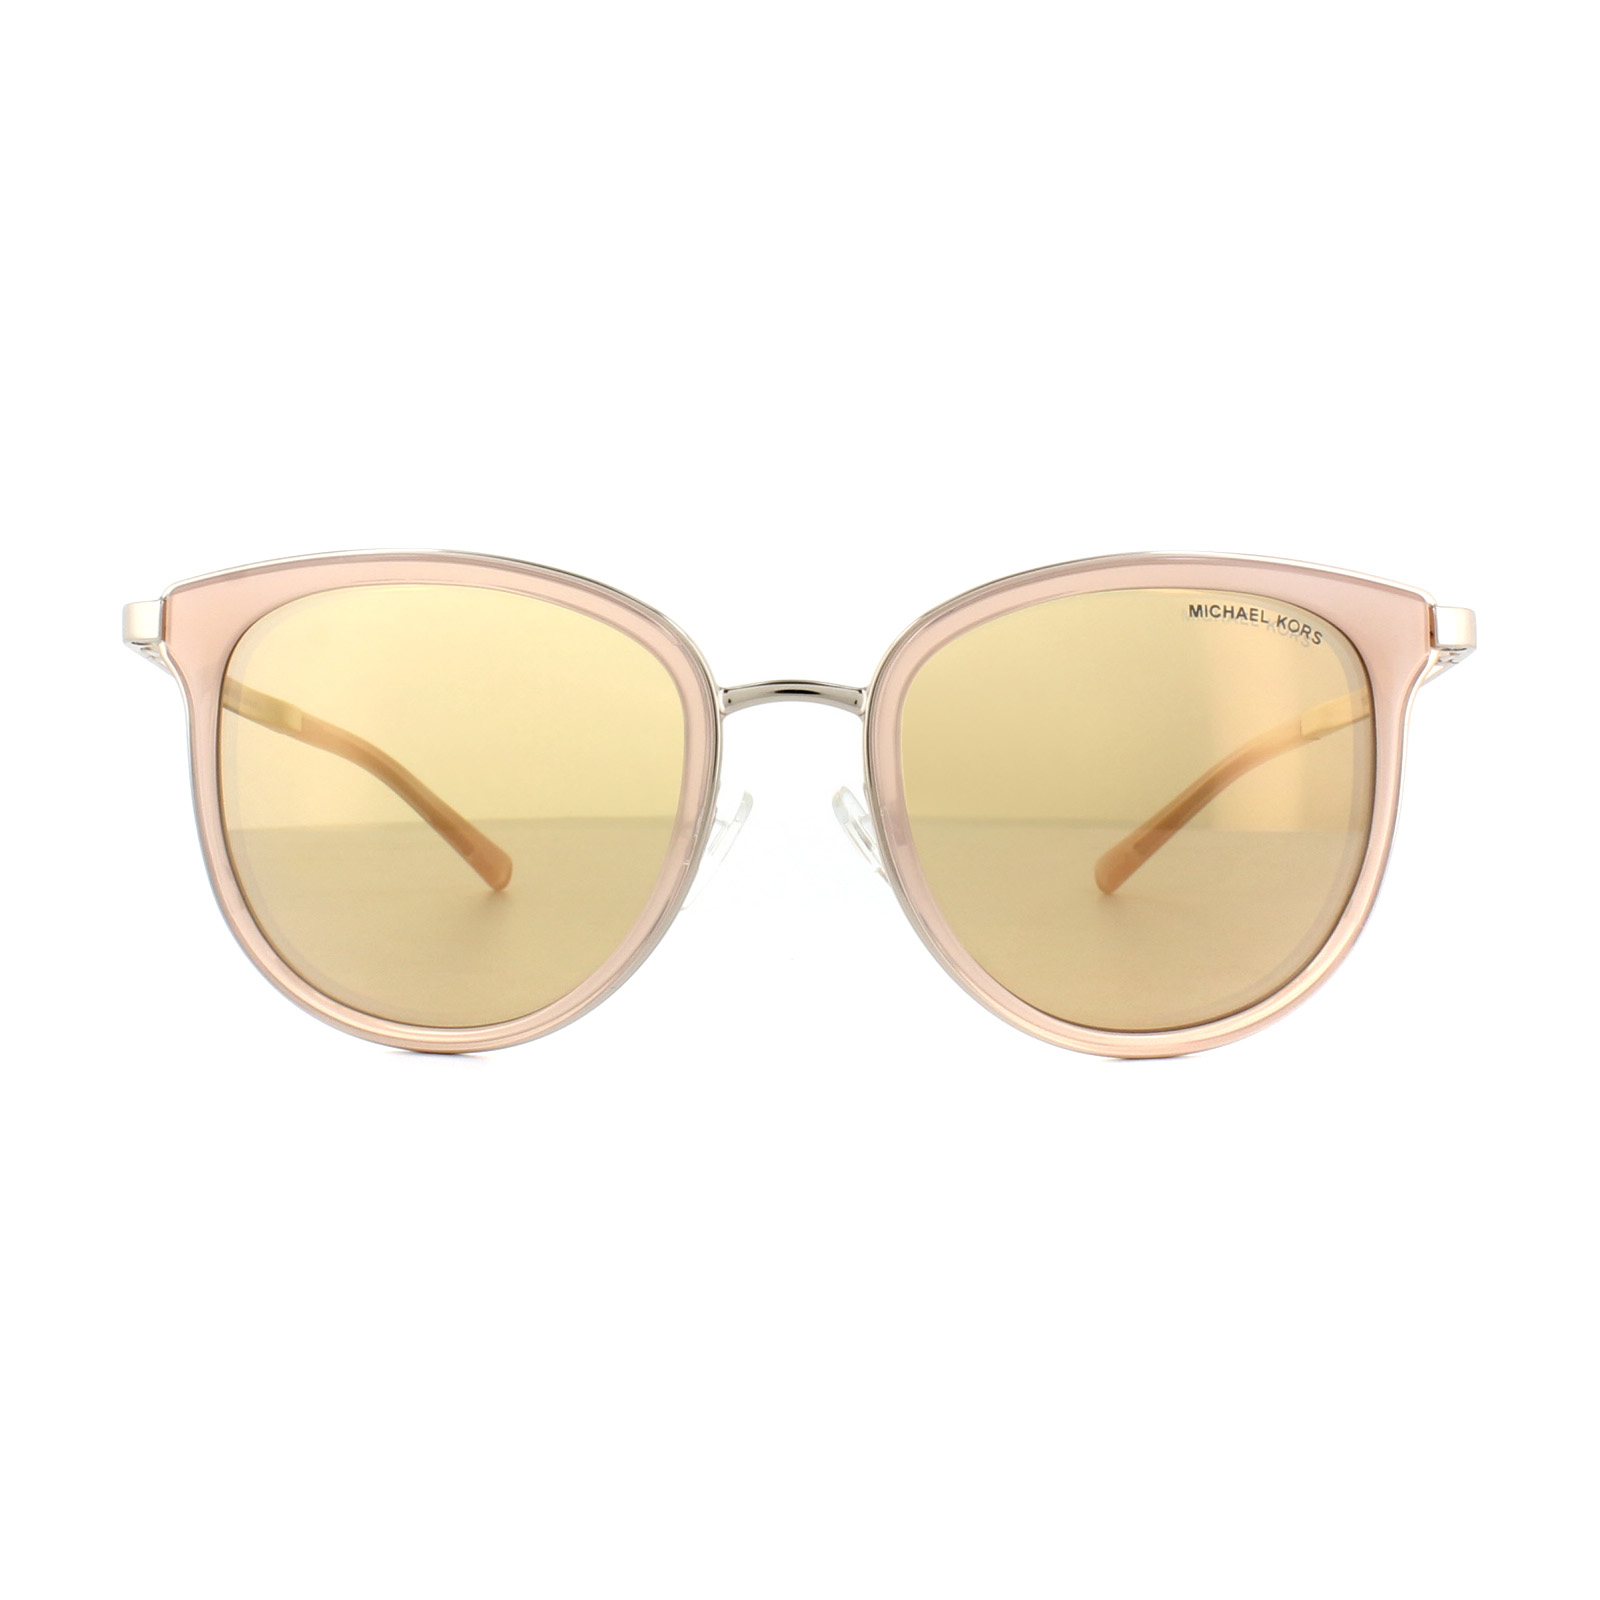 97e711ef85 Sentinel Michael Kors Sunglasses Adrianna 1 1010 1103R1 Pink Rose Gold Rose  Gold Miirror